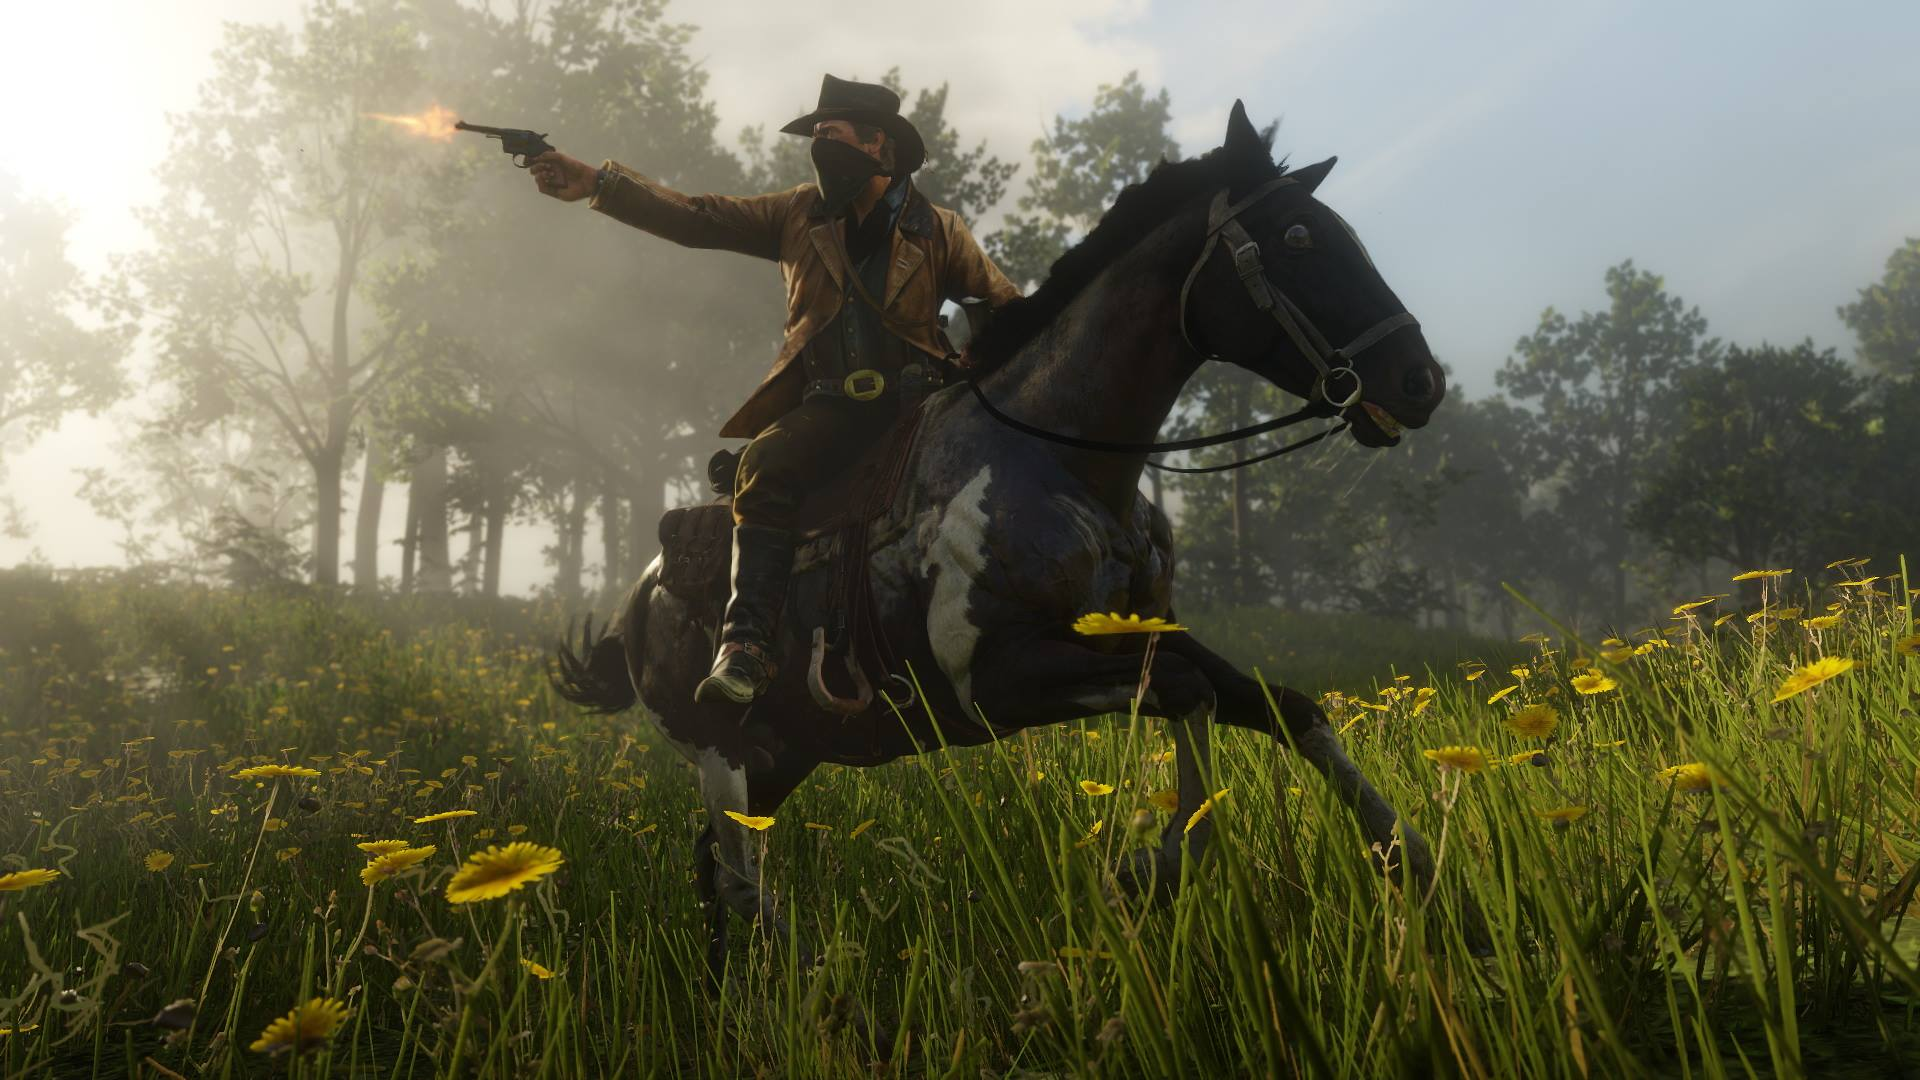 How to watch the Red Dead Redemption 2 gameplay trailer